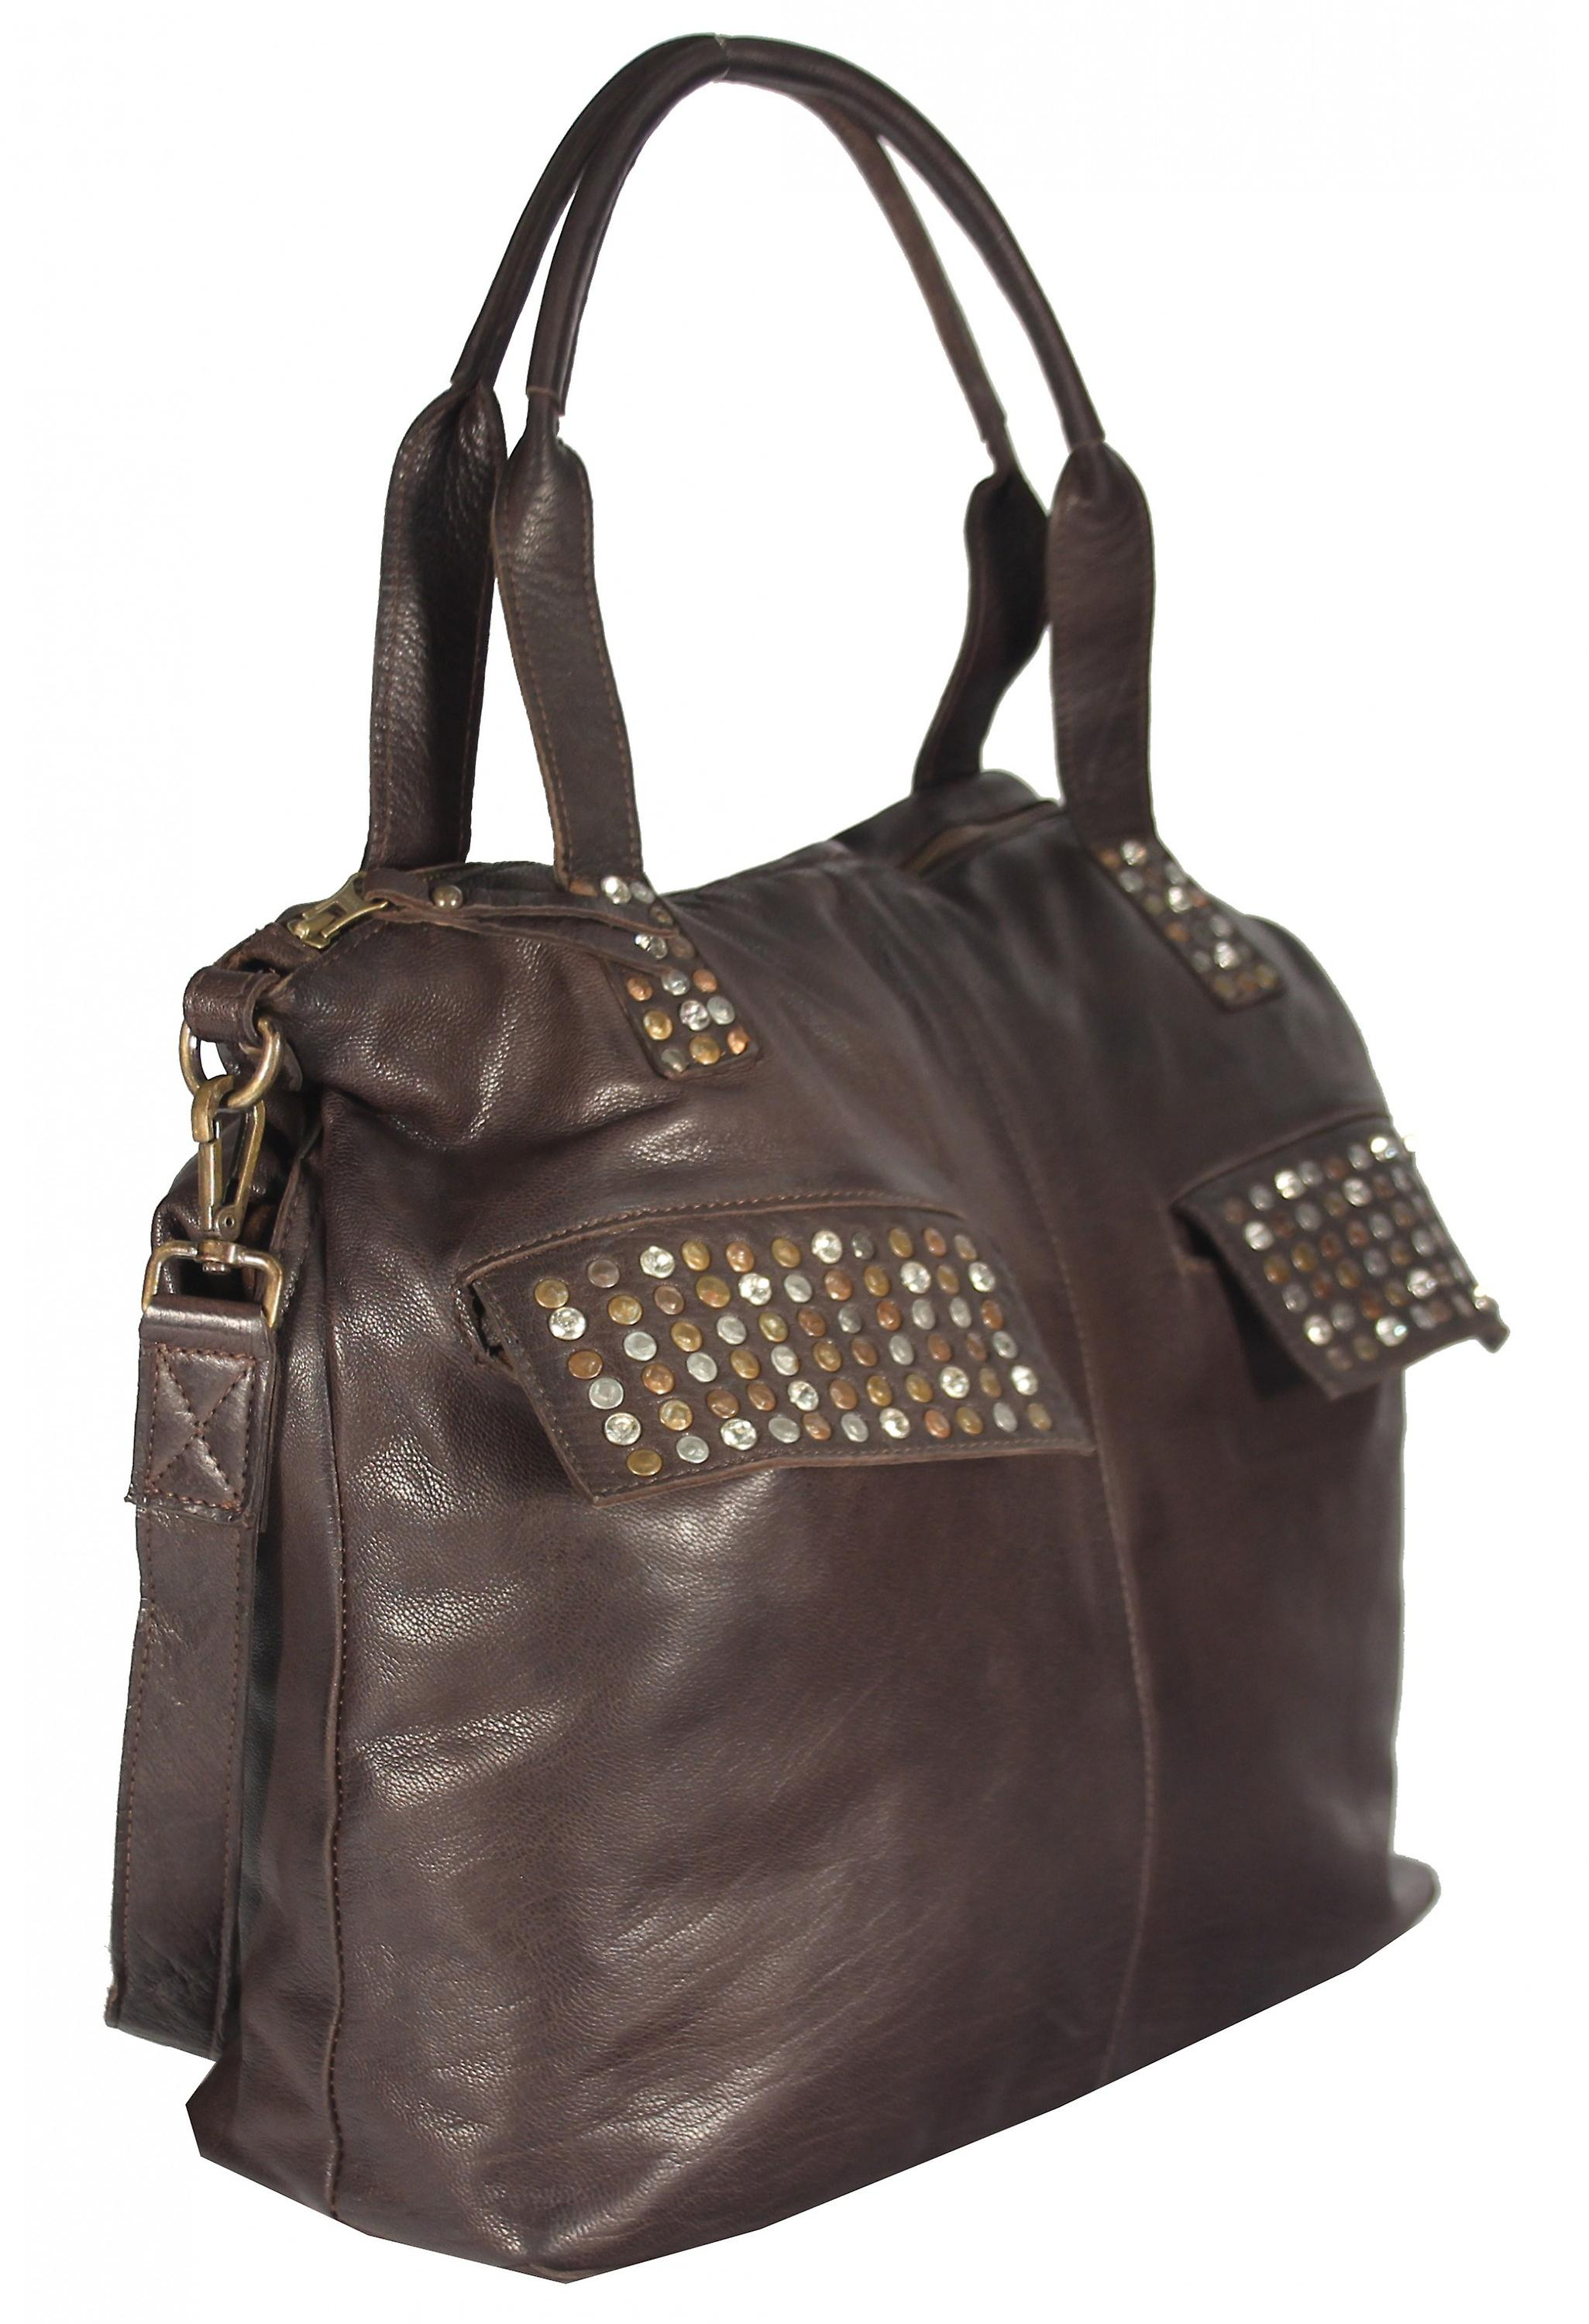 Tholisa - large leather of shopper bag rivets rhinestones Tote